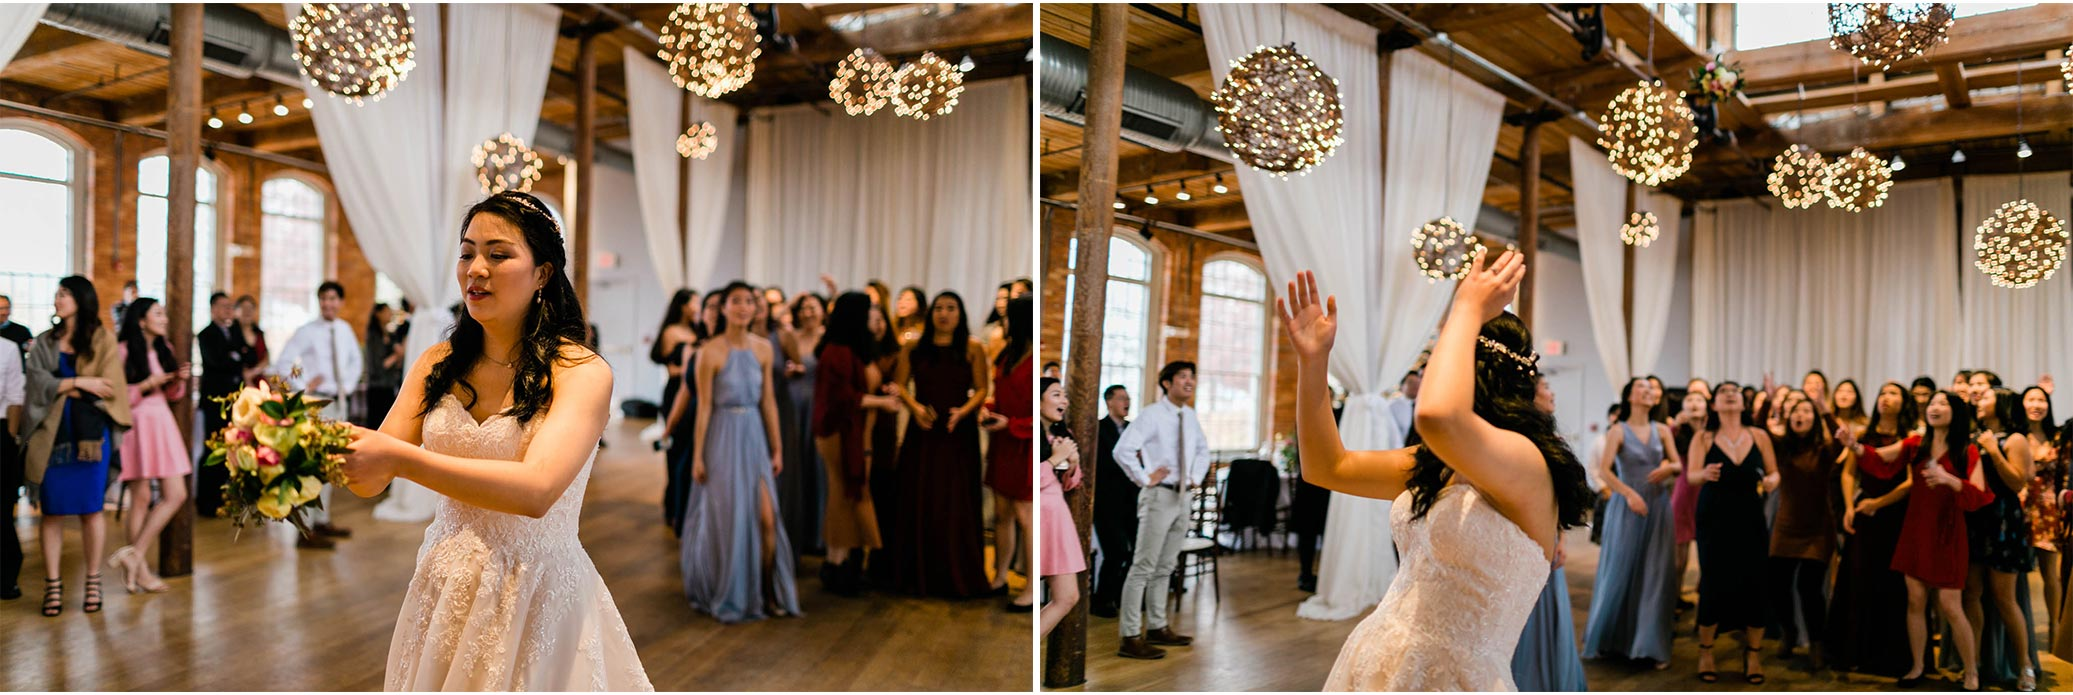 Bouquet toss at The Cotton Room | Durham Event Photographer  | By G. Lin Photography